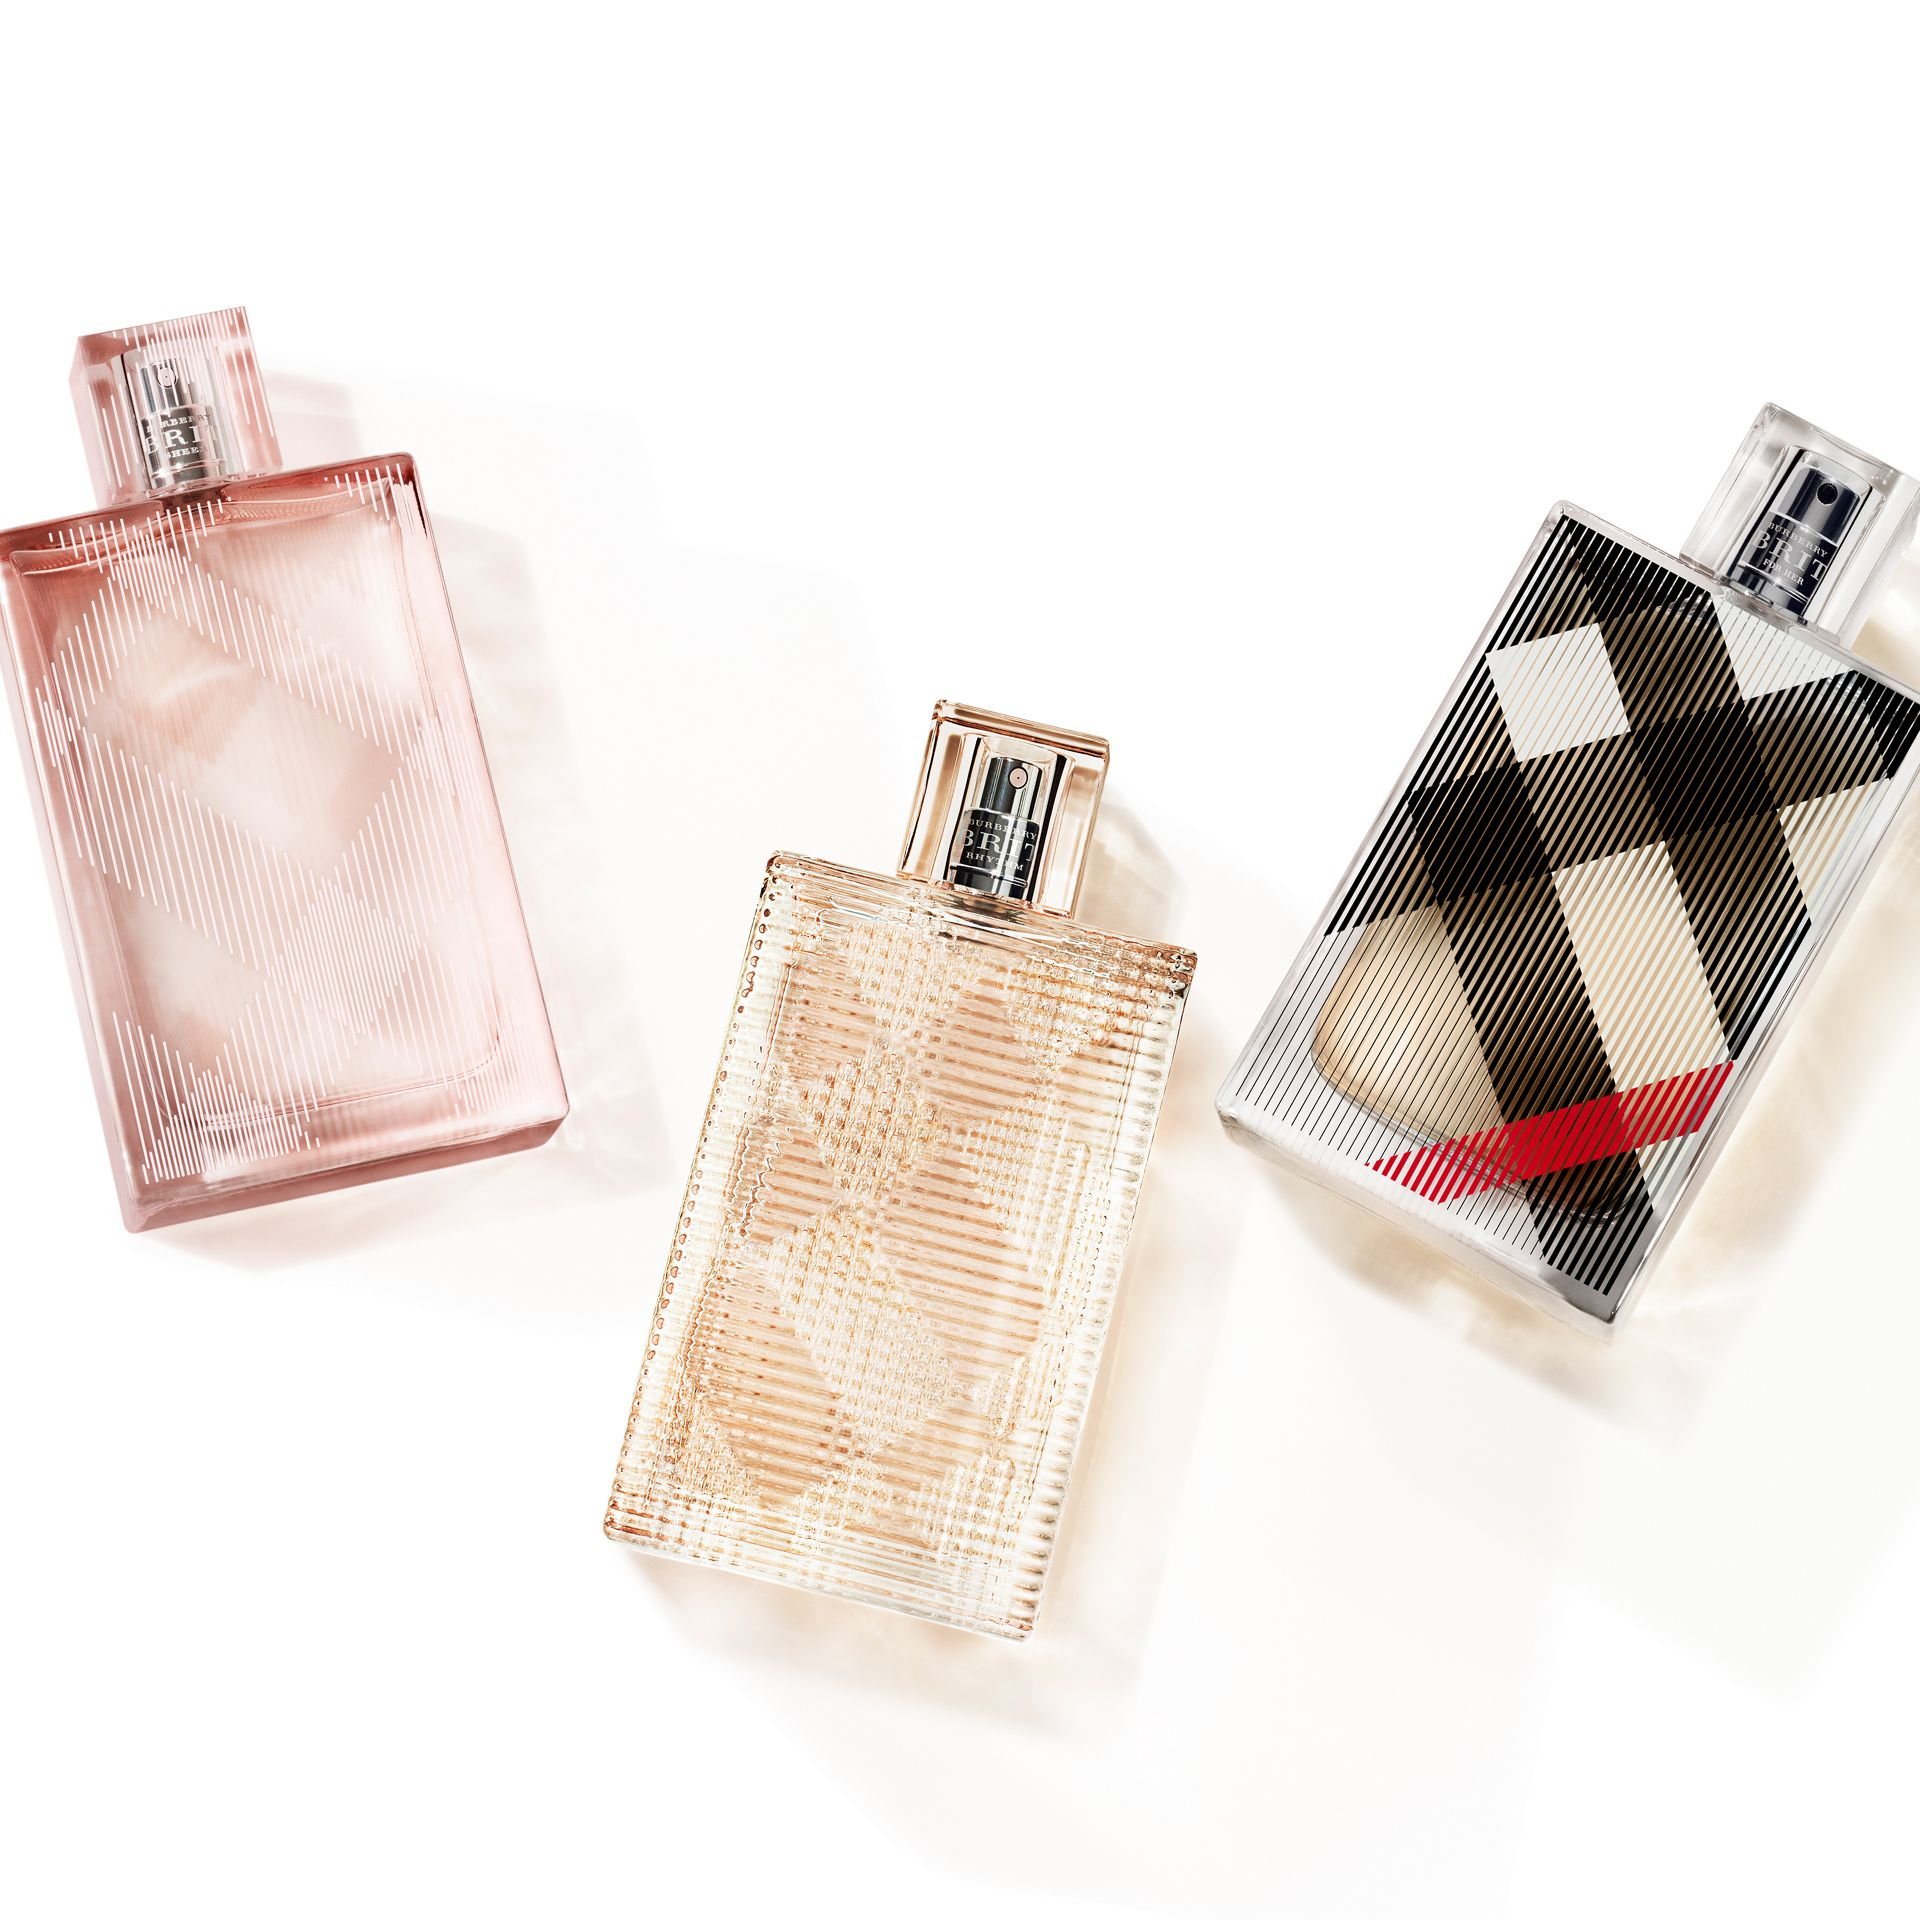 Burberry Brit For Her Eau de Toilette 100ml - Women | Burberry - gallery image 4